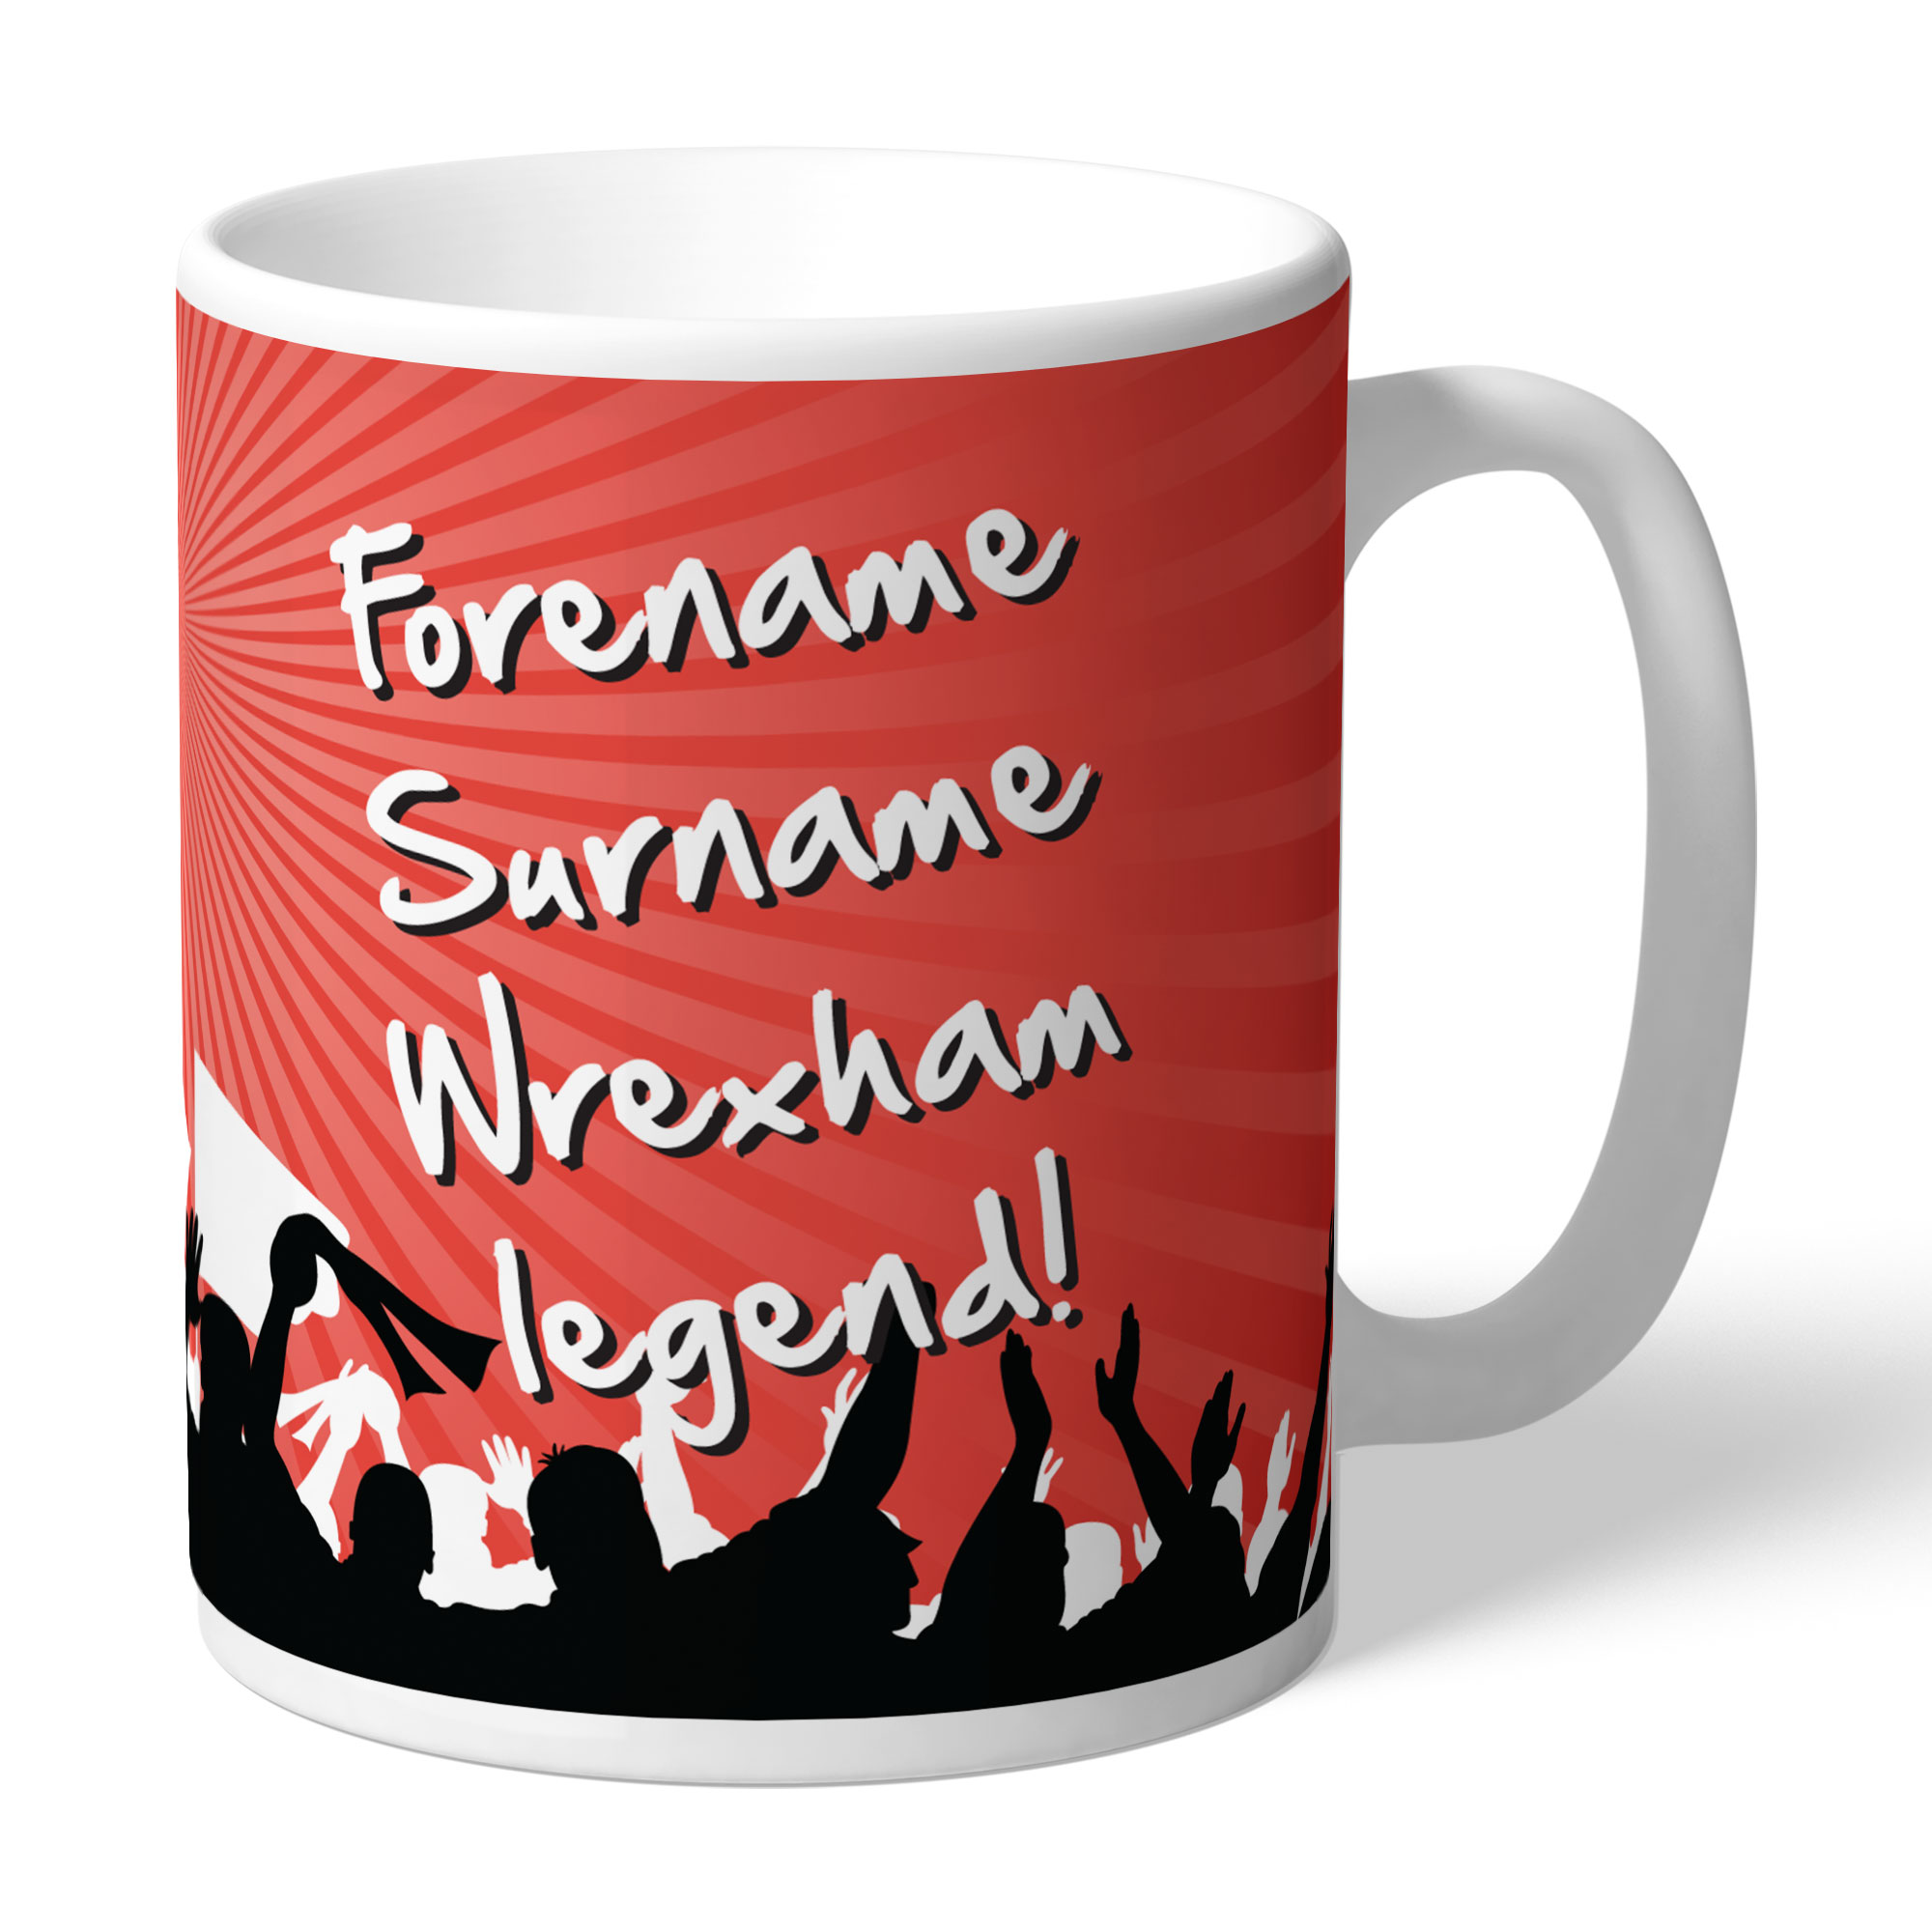 Wrexham AFC Legend Mug